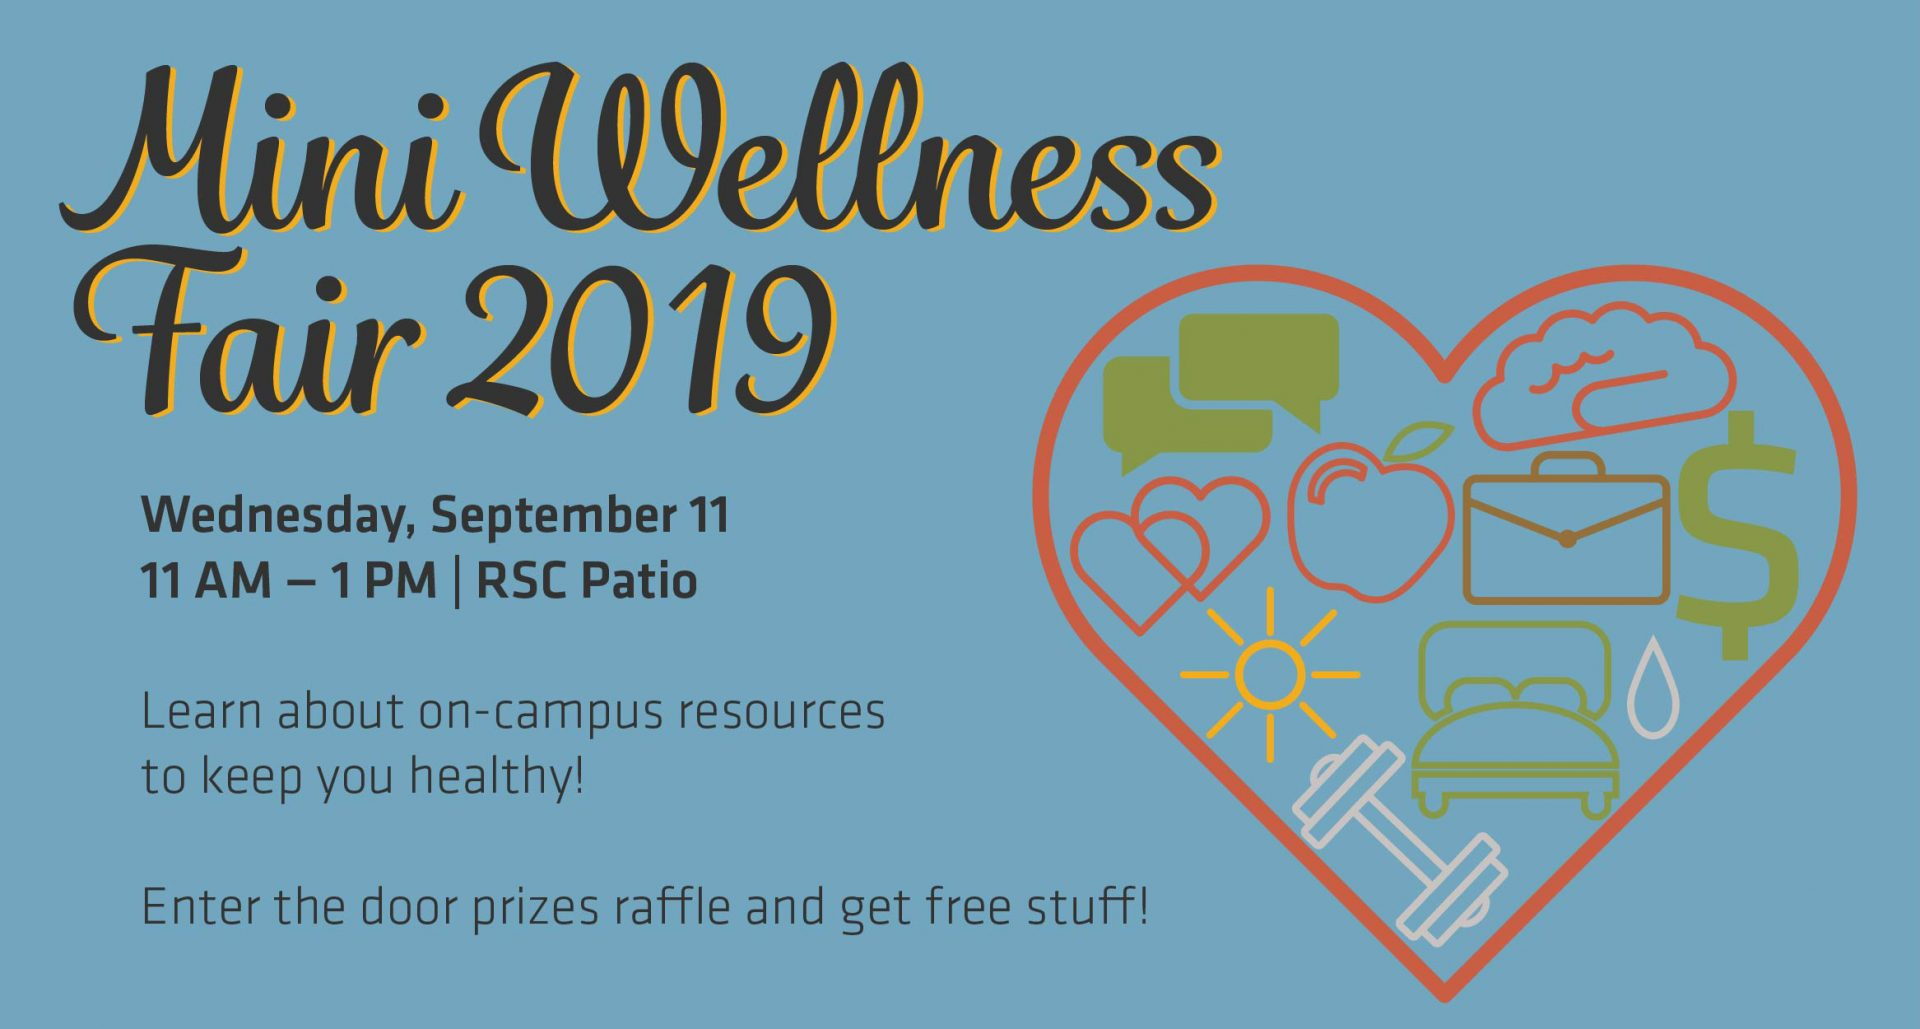 Mini Wellness Fair 2019, Wednesday, September 11 from 11 a.m. to 1 p.m. at RSC Patio